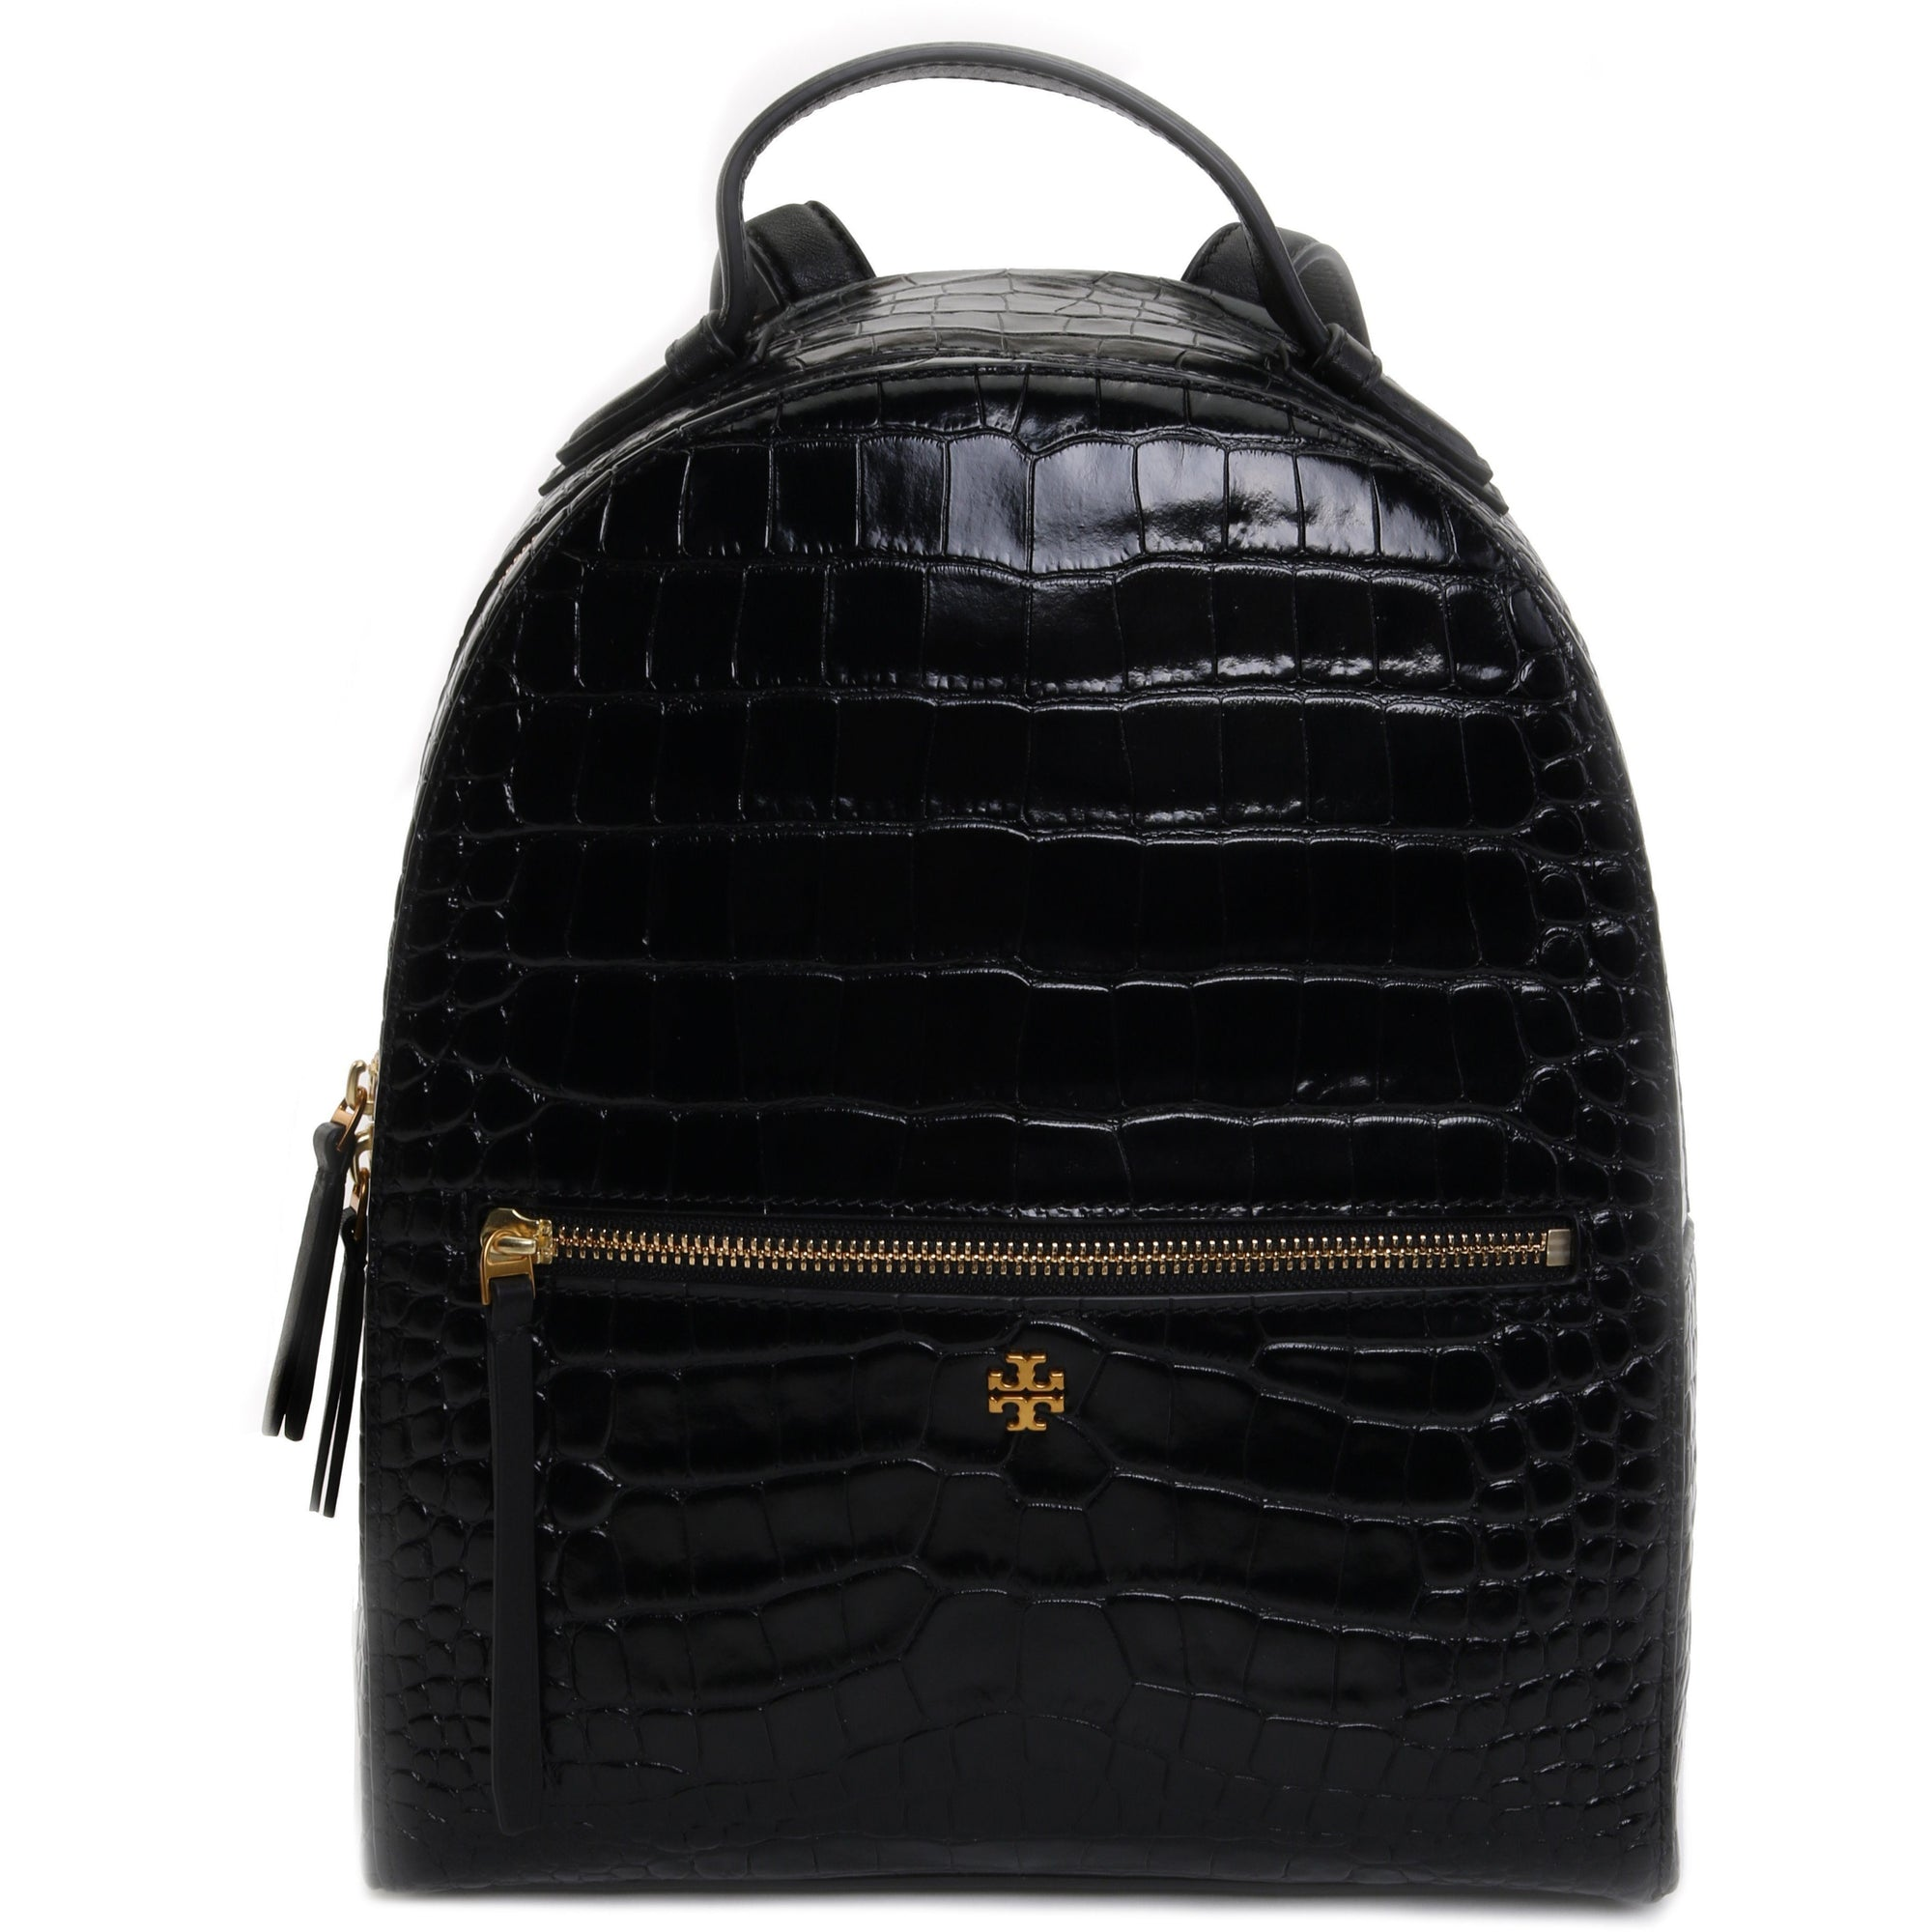 Tory Burch Croc-Embossed Mini Backpack HANDBAG Tory Burch